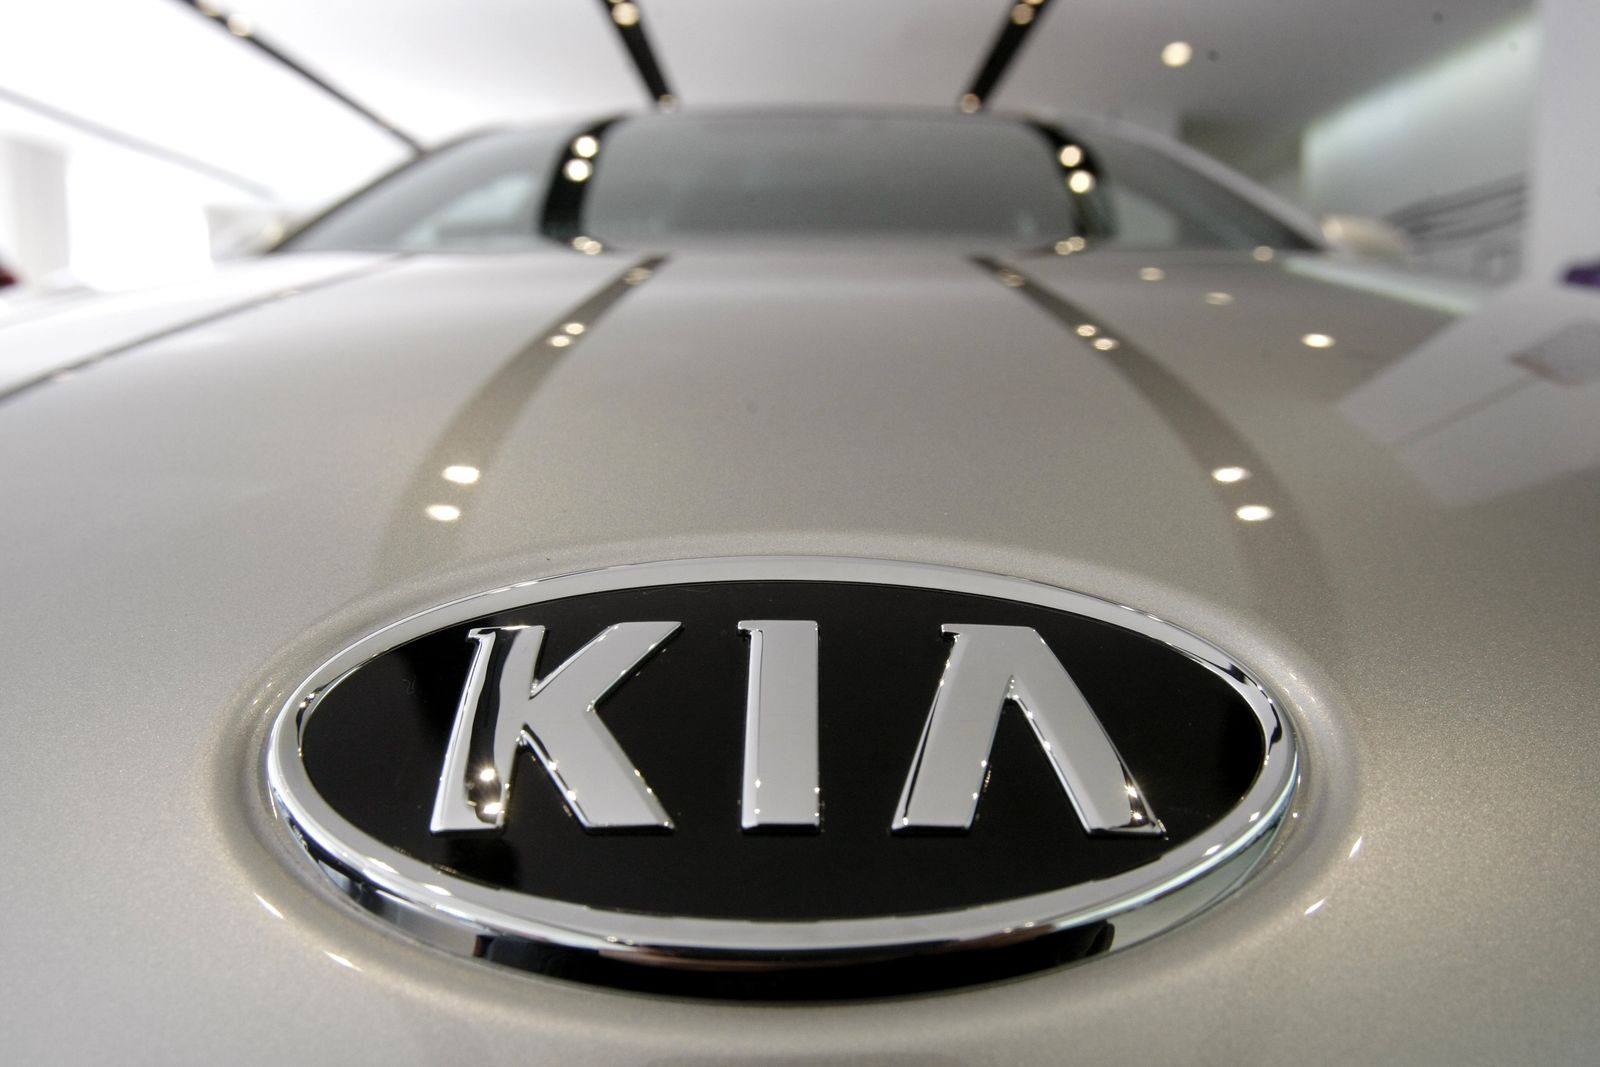 Kia is joining its affiliate Hyundai in recalling thousands of vehicles in the U.S. because water can get into a brake computer, cause an electrical short and possibly a fire. (AP Photo/Ahn Young-joon, File)